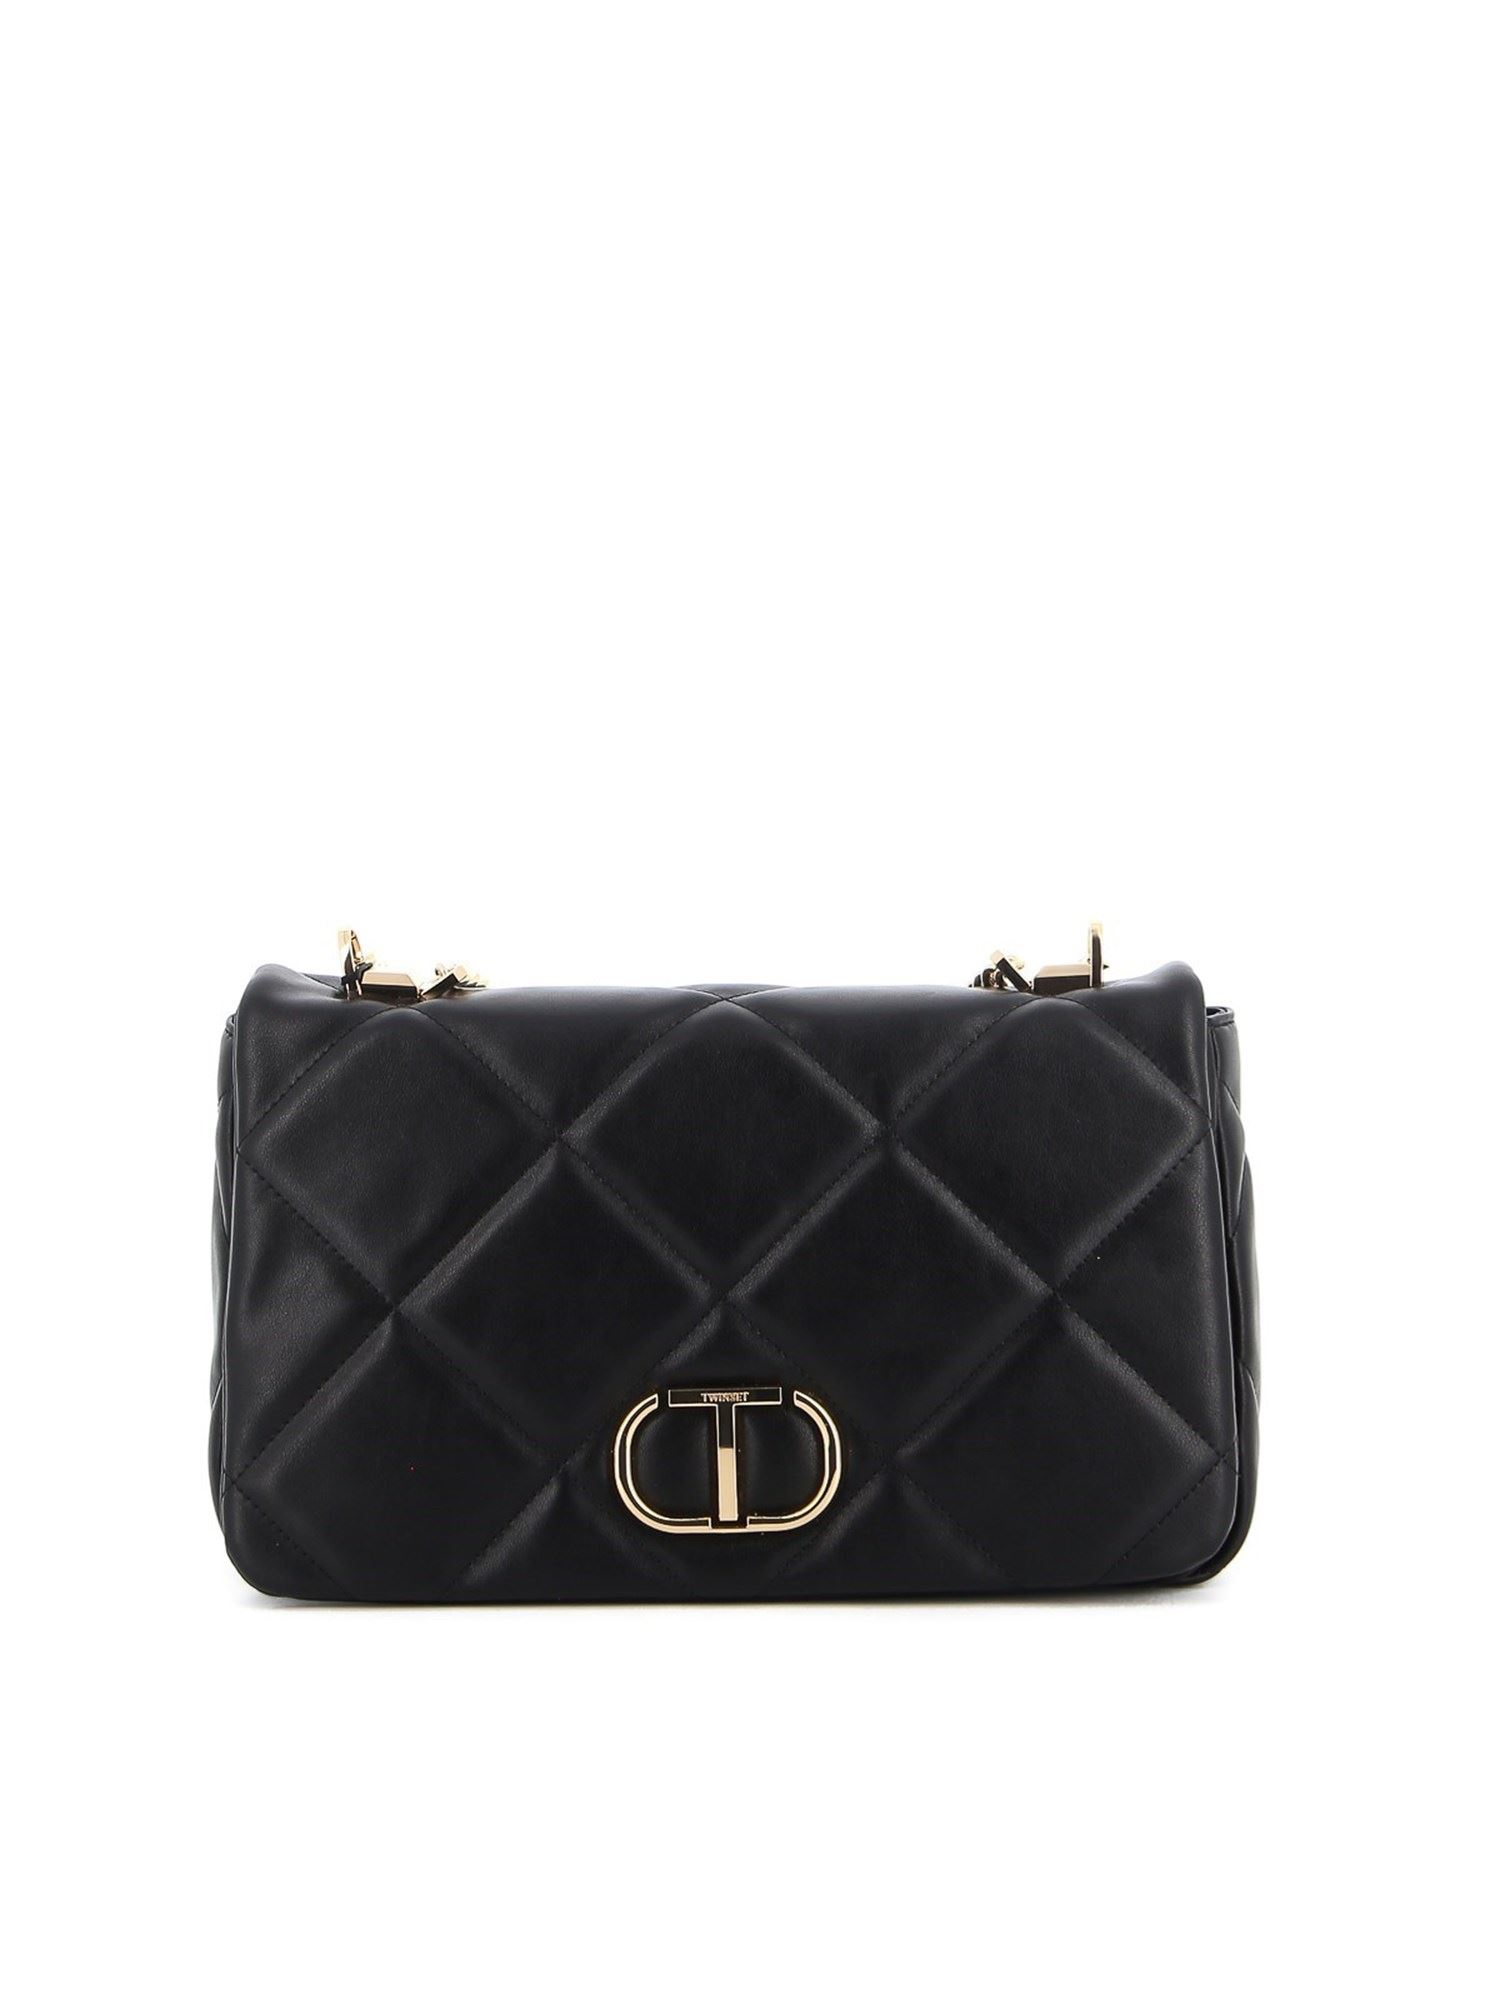 Twinset FAUX LEATHER QUILTED CROSSBODY BAG IN BLACK